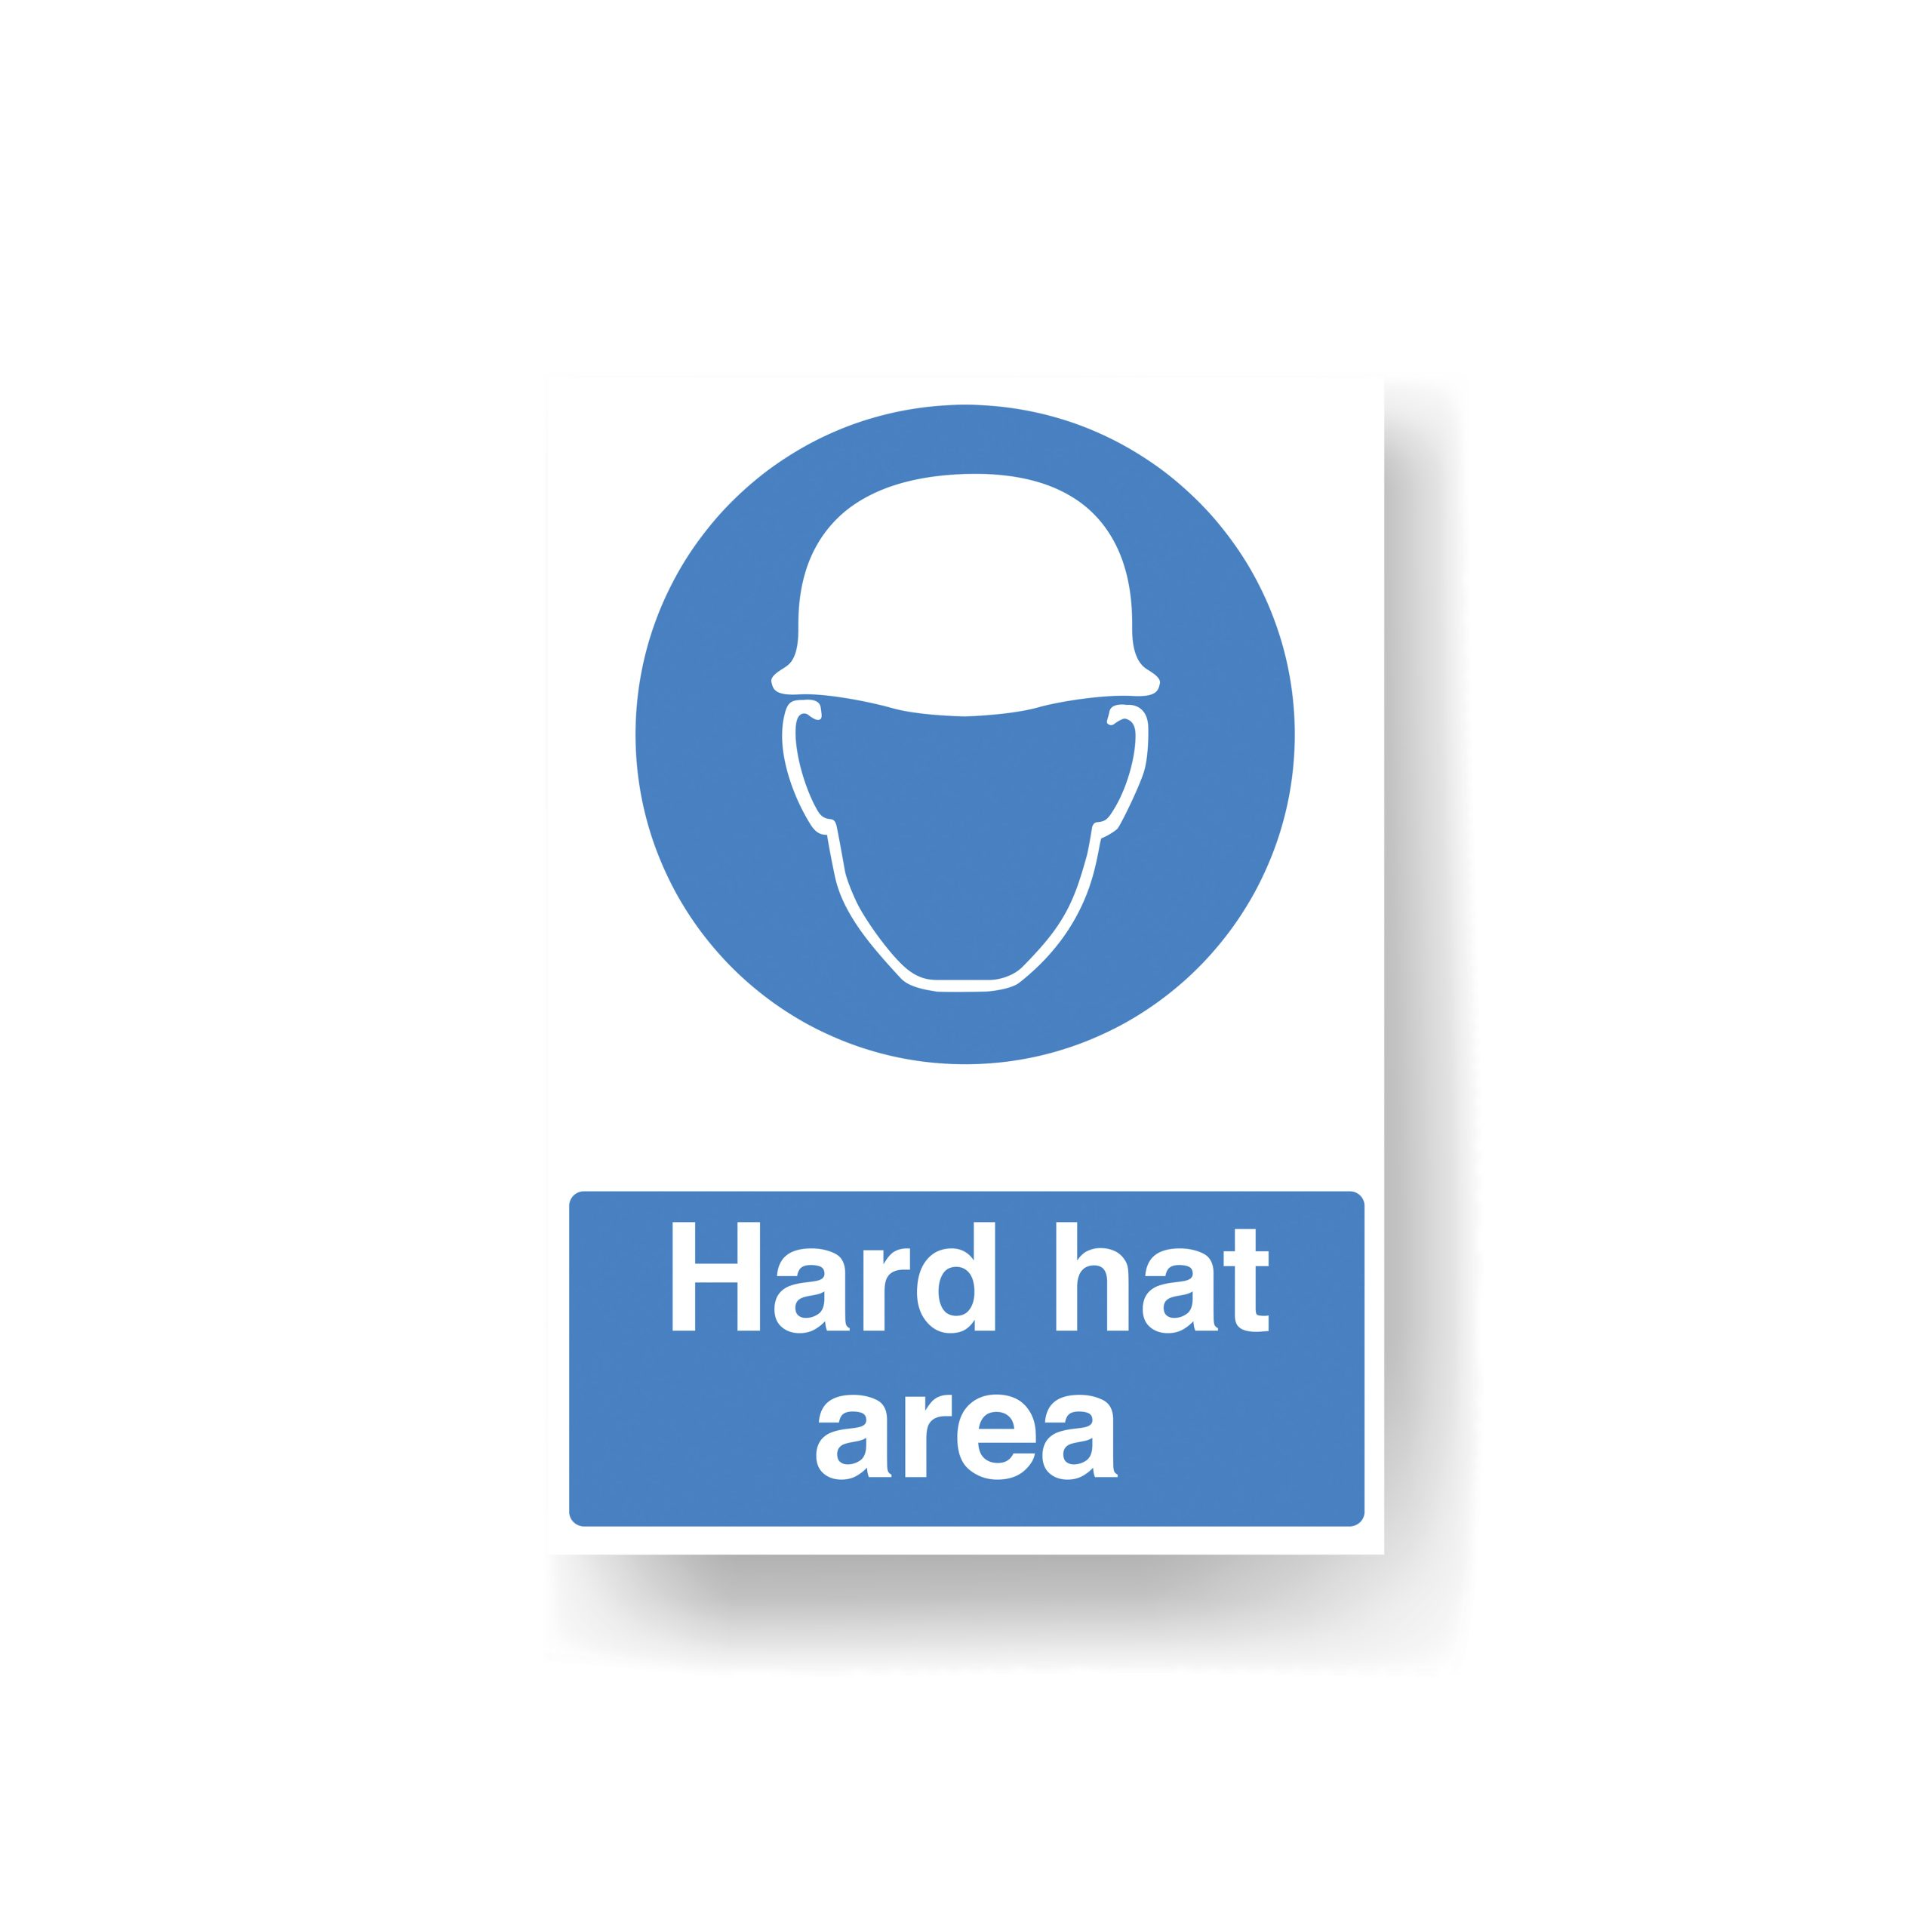 Hard hat must be worn safety sign